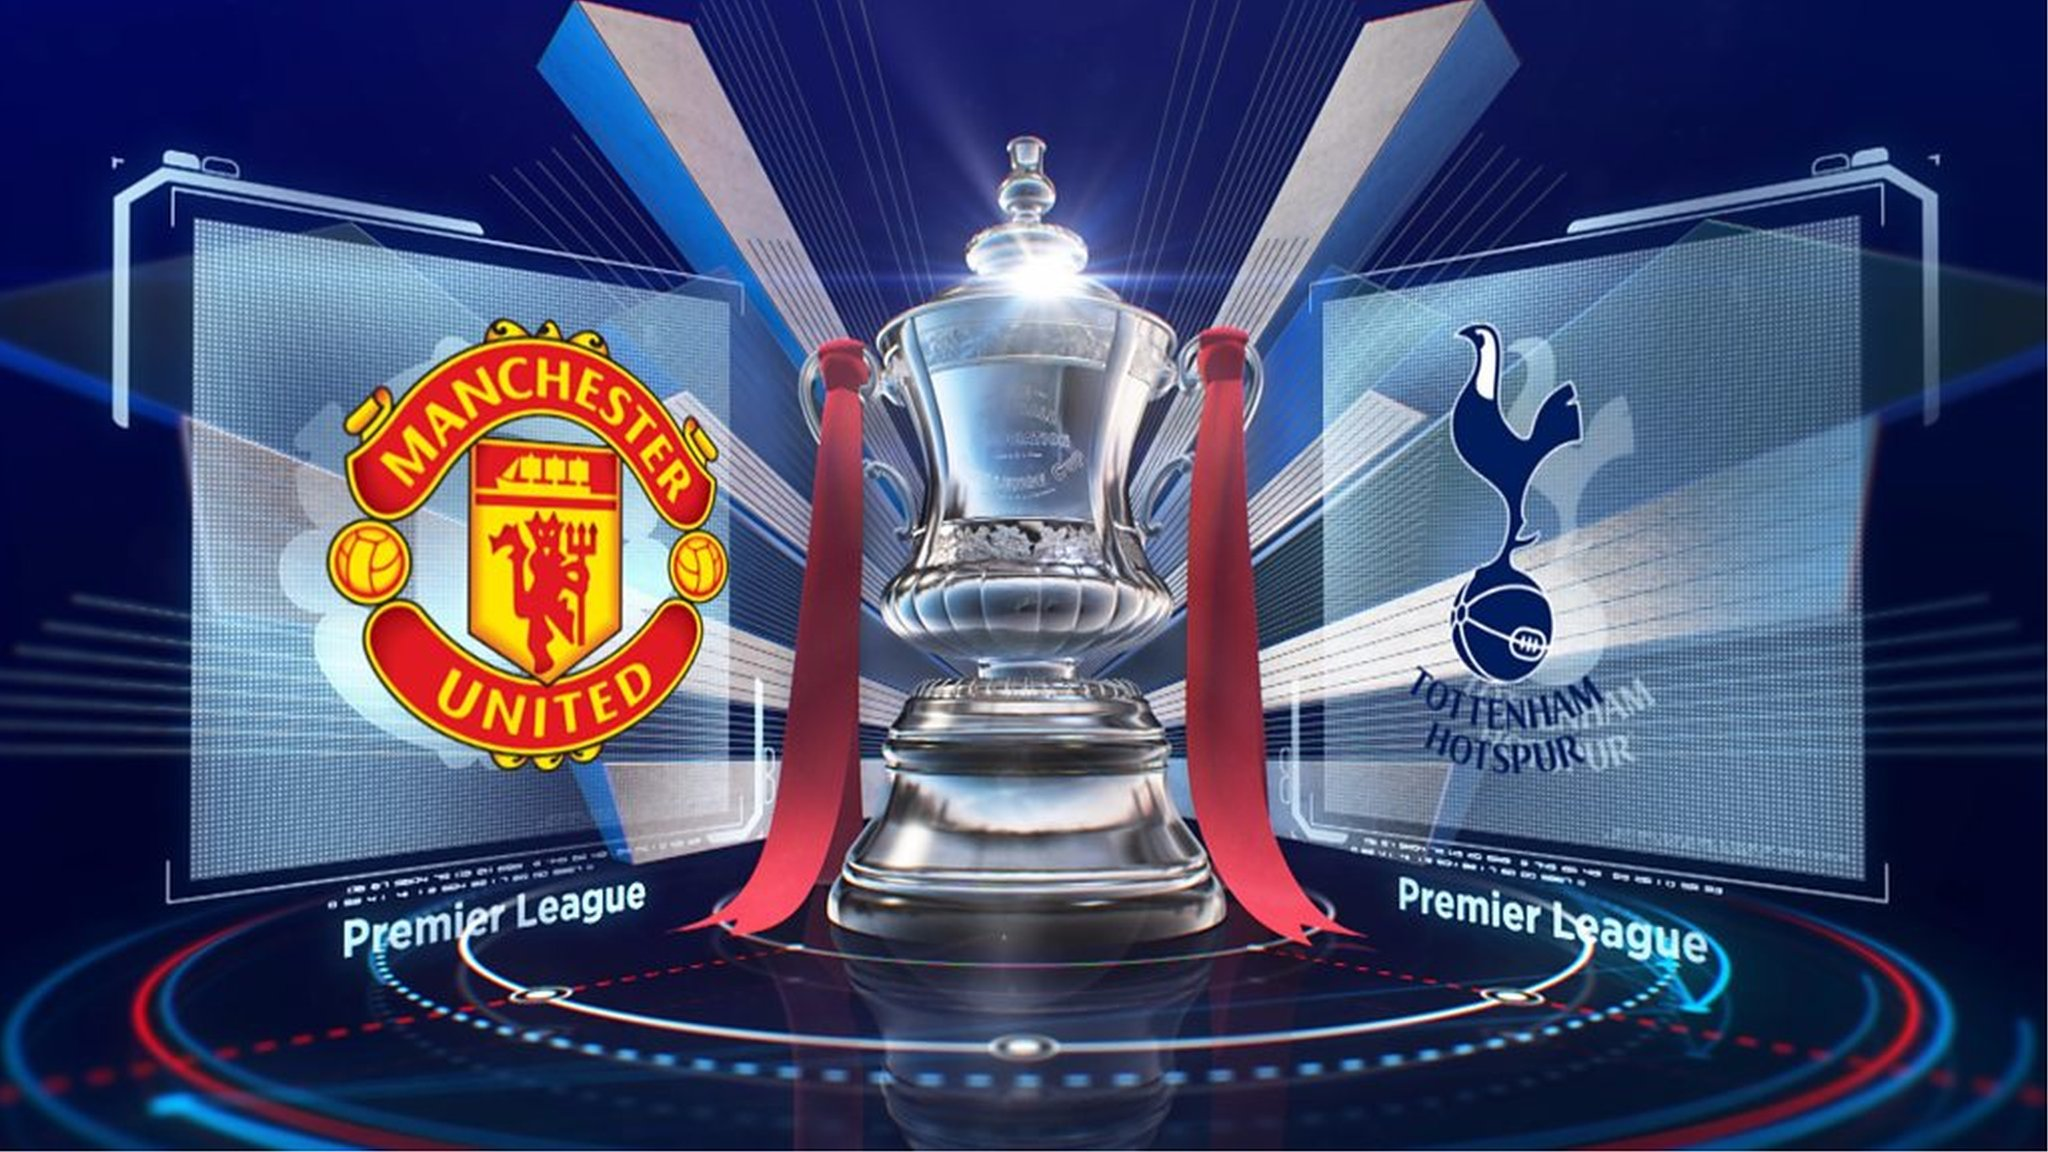 FA Cup: Manchester United 2-1 Tottenham highlights